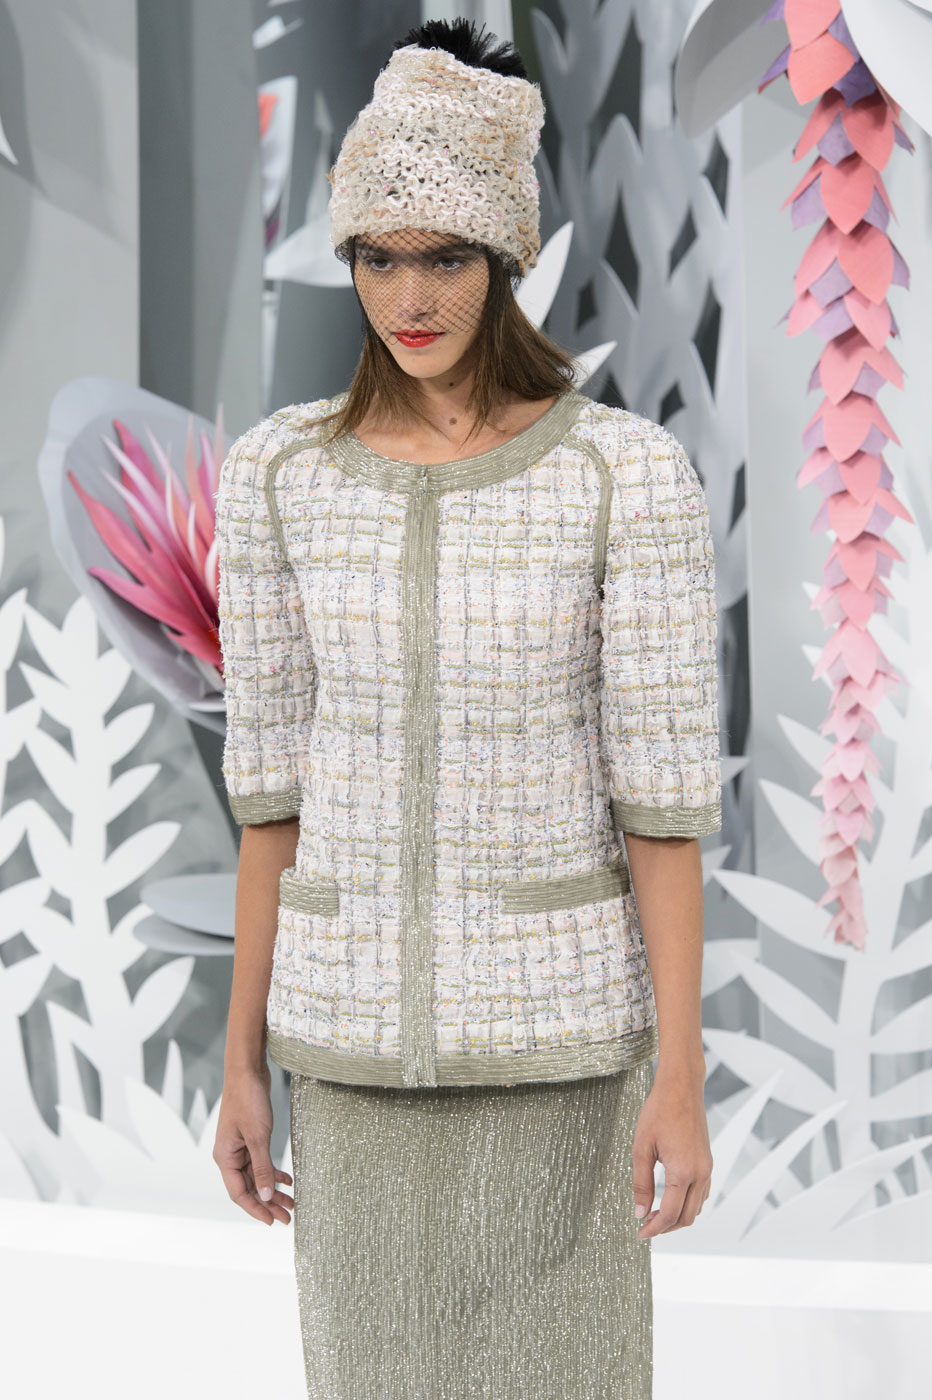 Chanel-fashion-runway-show-haute-couture-paris-spring-summer-2015-the-impression-057